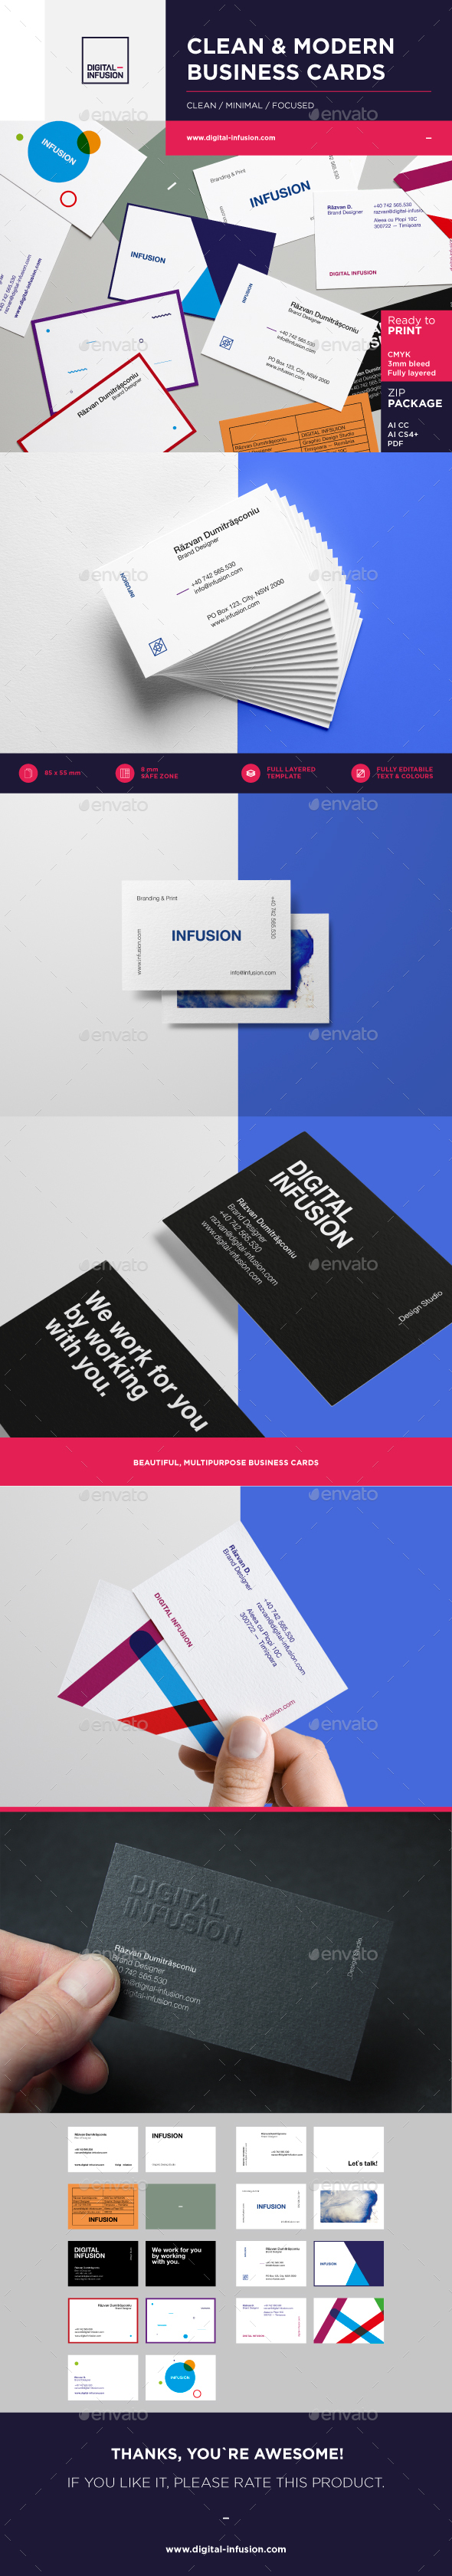 Clean & Modern Business Cards - Creative Business Cards